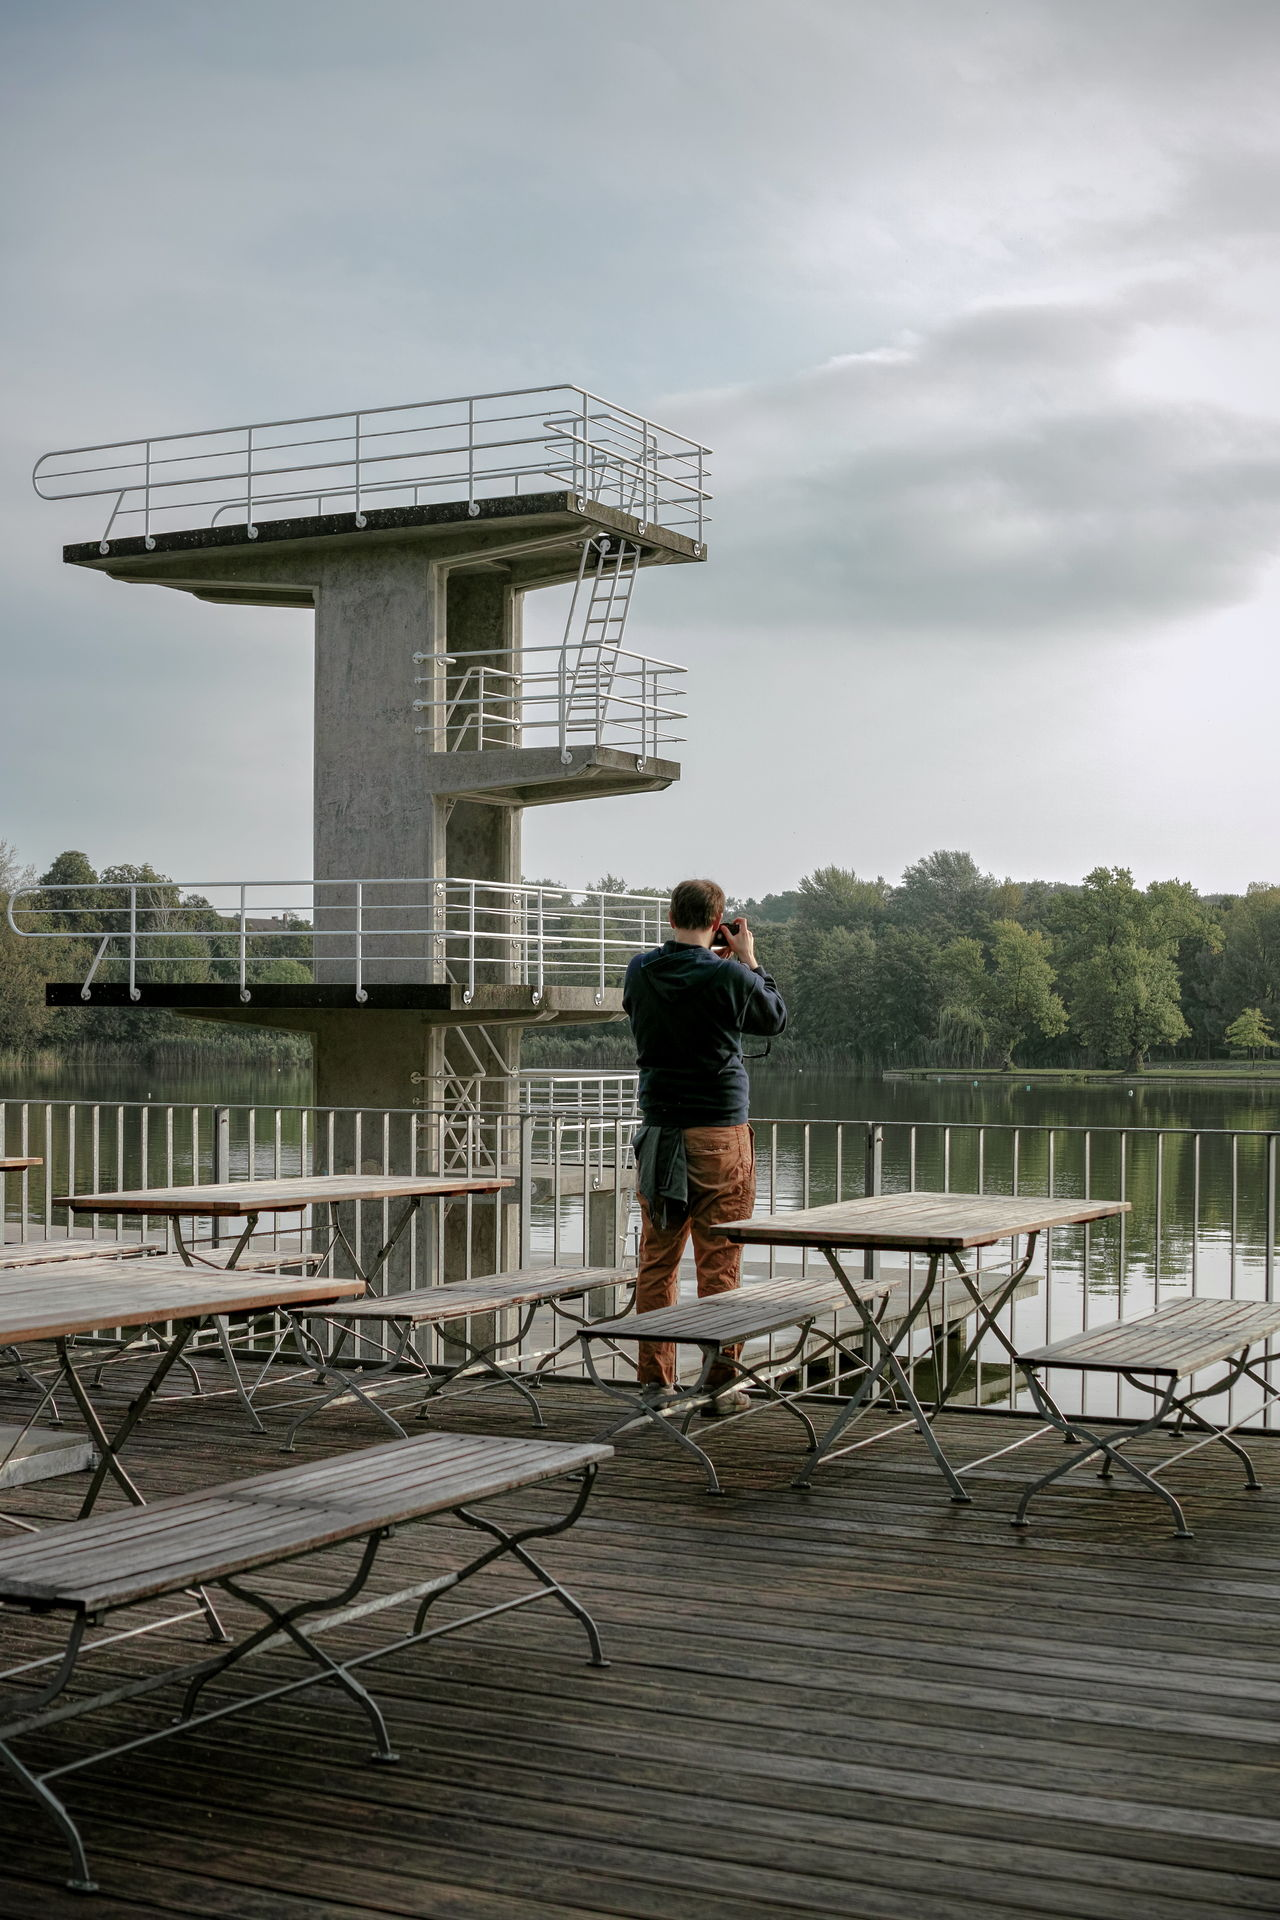 Woog Architecture Building Exterior Built Structure Cloud - Sky Darmstadt Day Diving Platform Lake Leisure Activity Lifestyles Man Nature One Person Outdoors Photographer Real People Rear View Sightseeing Sky Standing Tree Water Woog